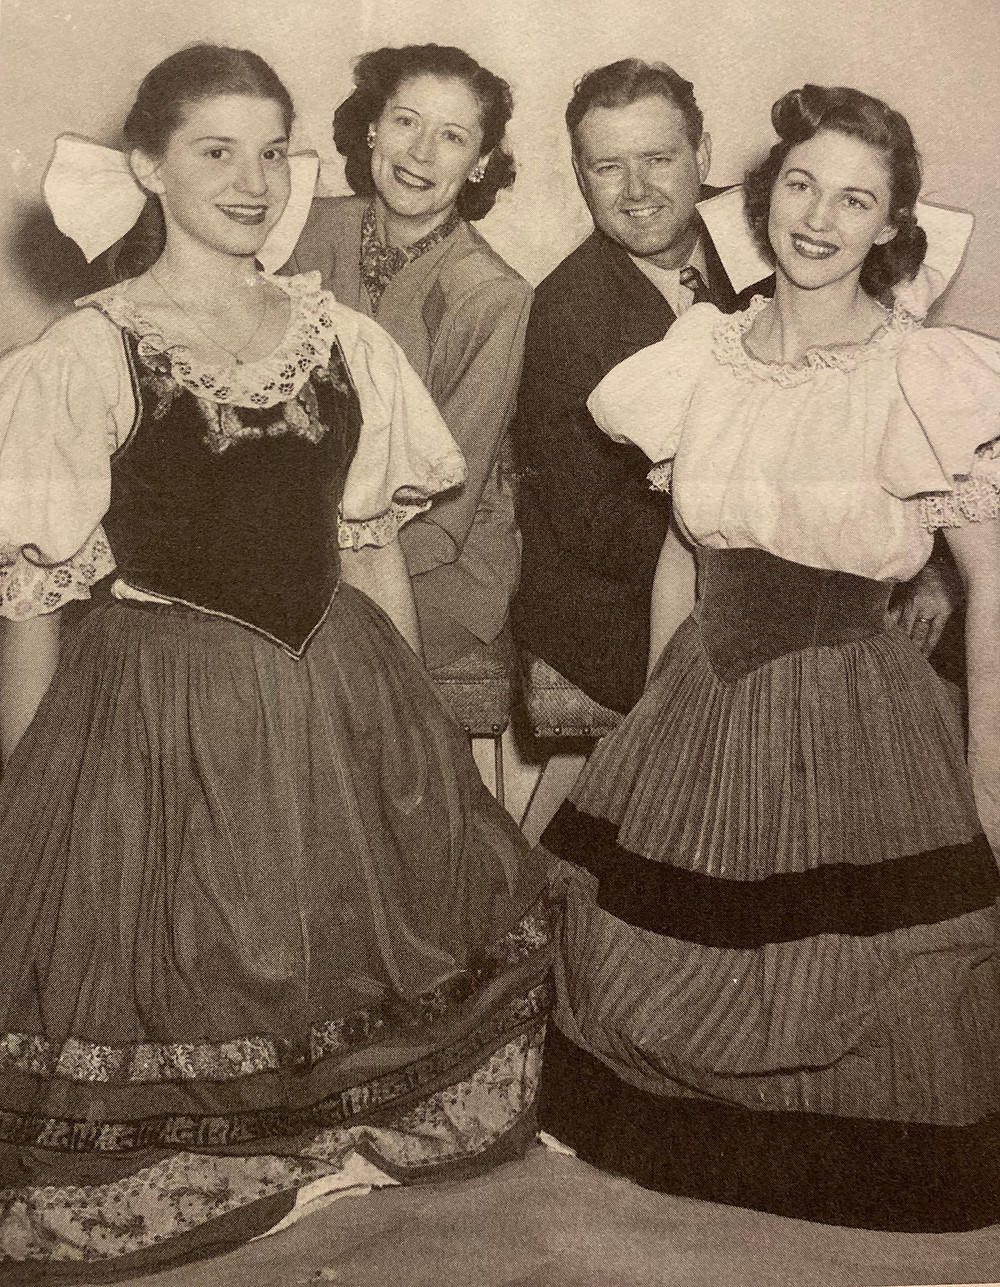 Jeanne Axtell Walker (center) with cast members of 'The Bartered Bride' (1949). Courtesy, Fort Worth Star-Telegram Collection, UTA Libraries